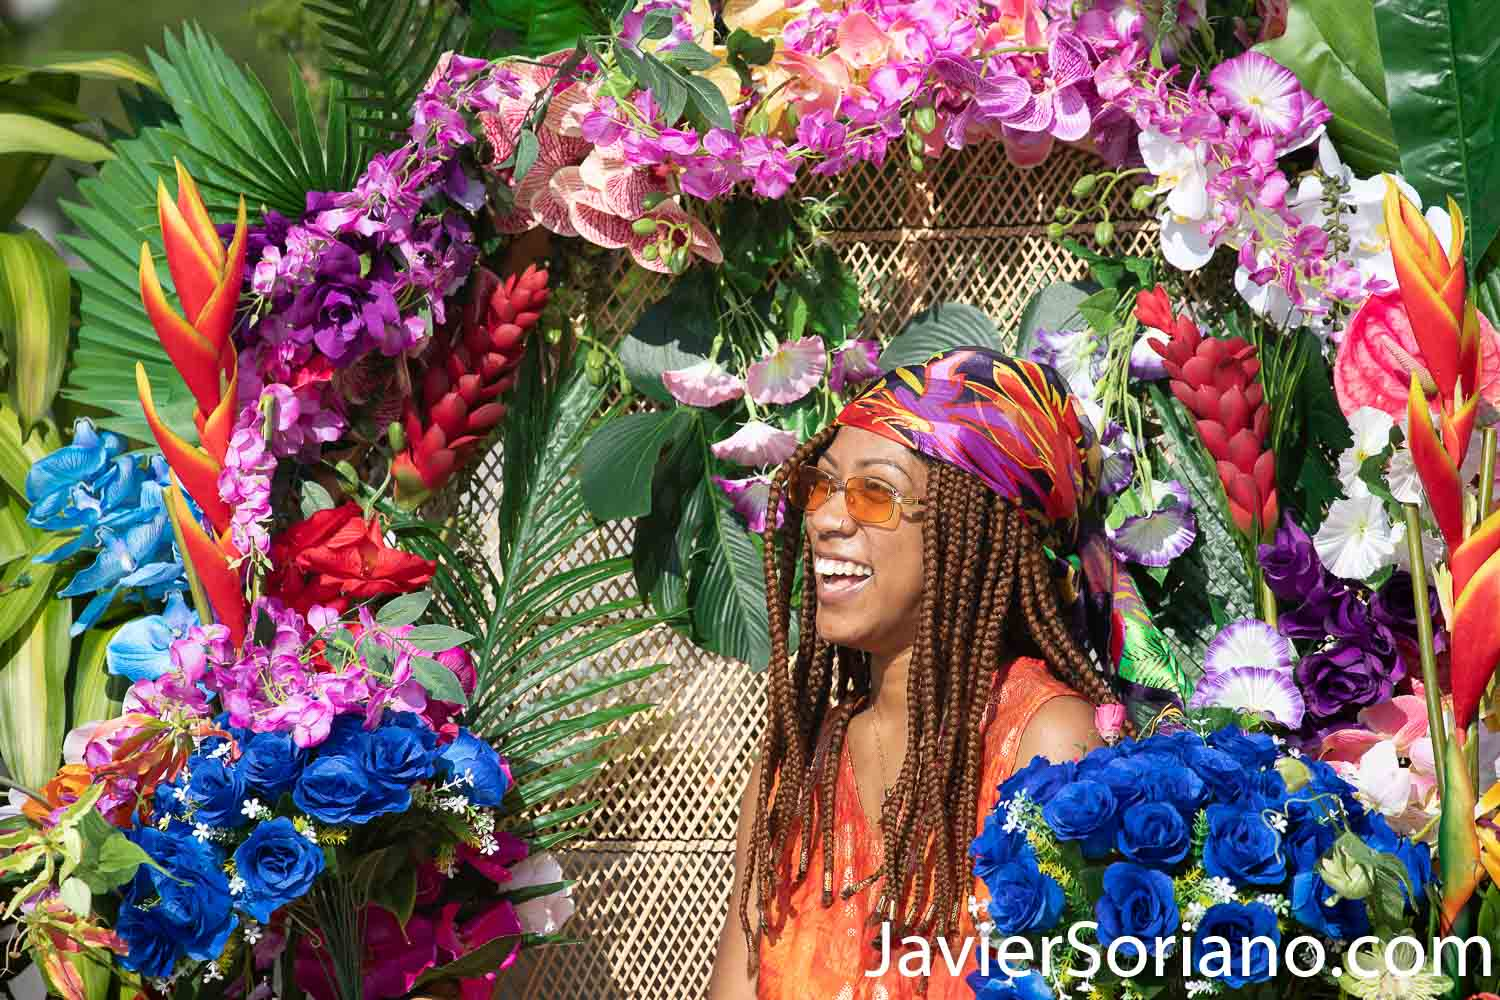 """Sunday, September 6, 2020. Brooklyn, New York City - """"Community Carnival"""" at Grand Army Plaza in Brooklyn. The Wide Awakes and Large Up said: """"We celebrate and honor the beauty and brilliance of Caribbean culture. As many of you all know, due to COVID-19, the annual West Indian Day parade is going virtual this year. With love and in solidarity, The Wide Awakes and Large Up are excited to amplify the voices of our Caribbean brothers and sisters with a fun filled day of unity and empowerment."""" Photo by Javier Soriano/www.JavierSoriano.com"""